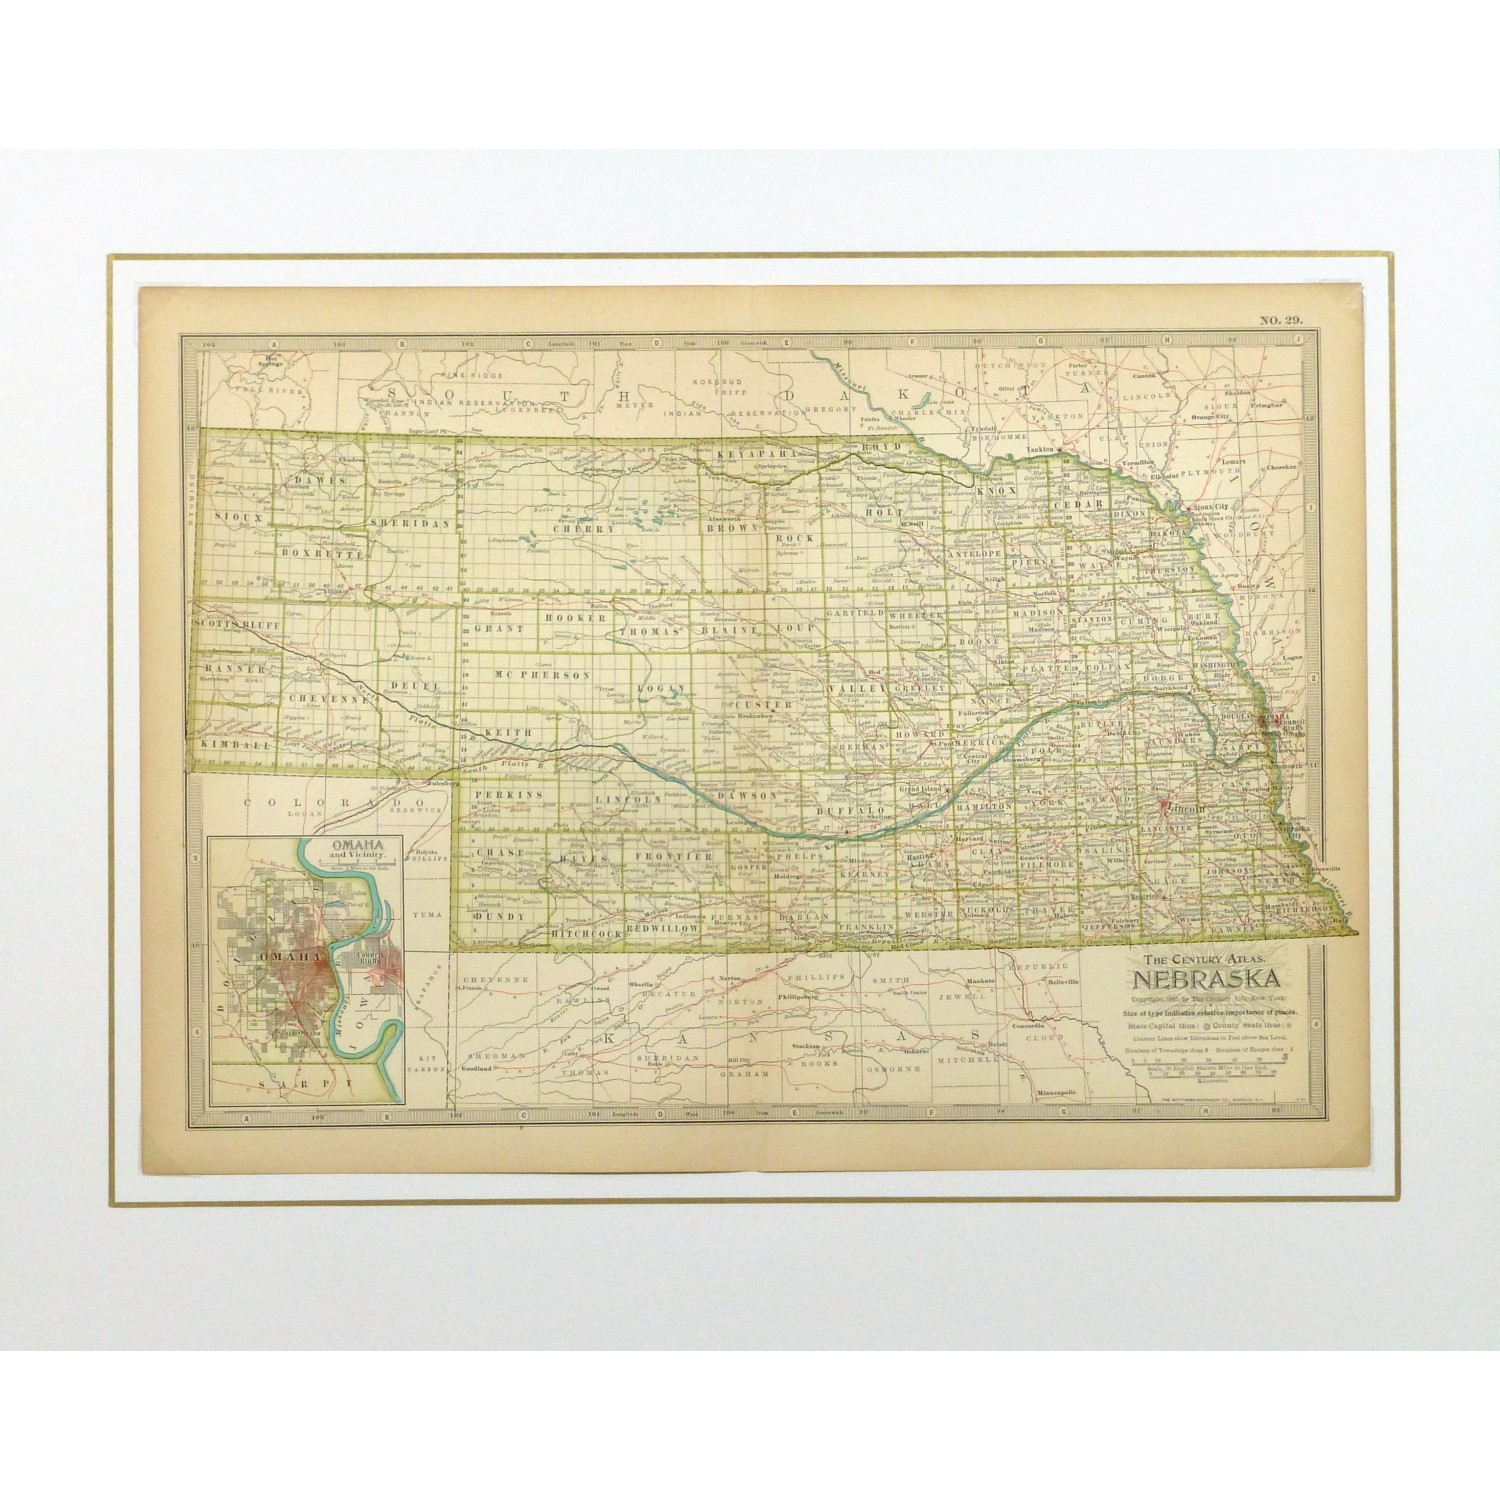 Original Antique Map Nebraska - matted - 9232m